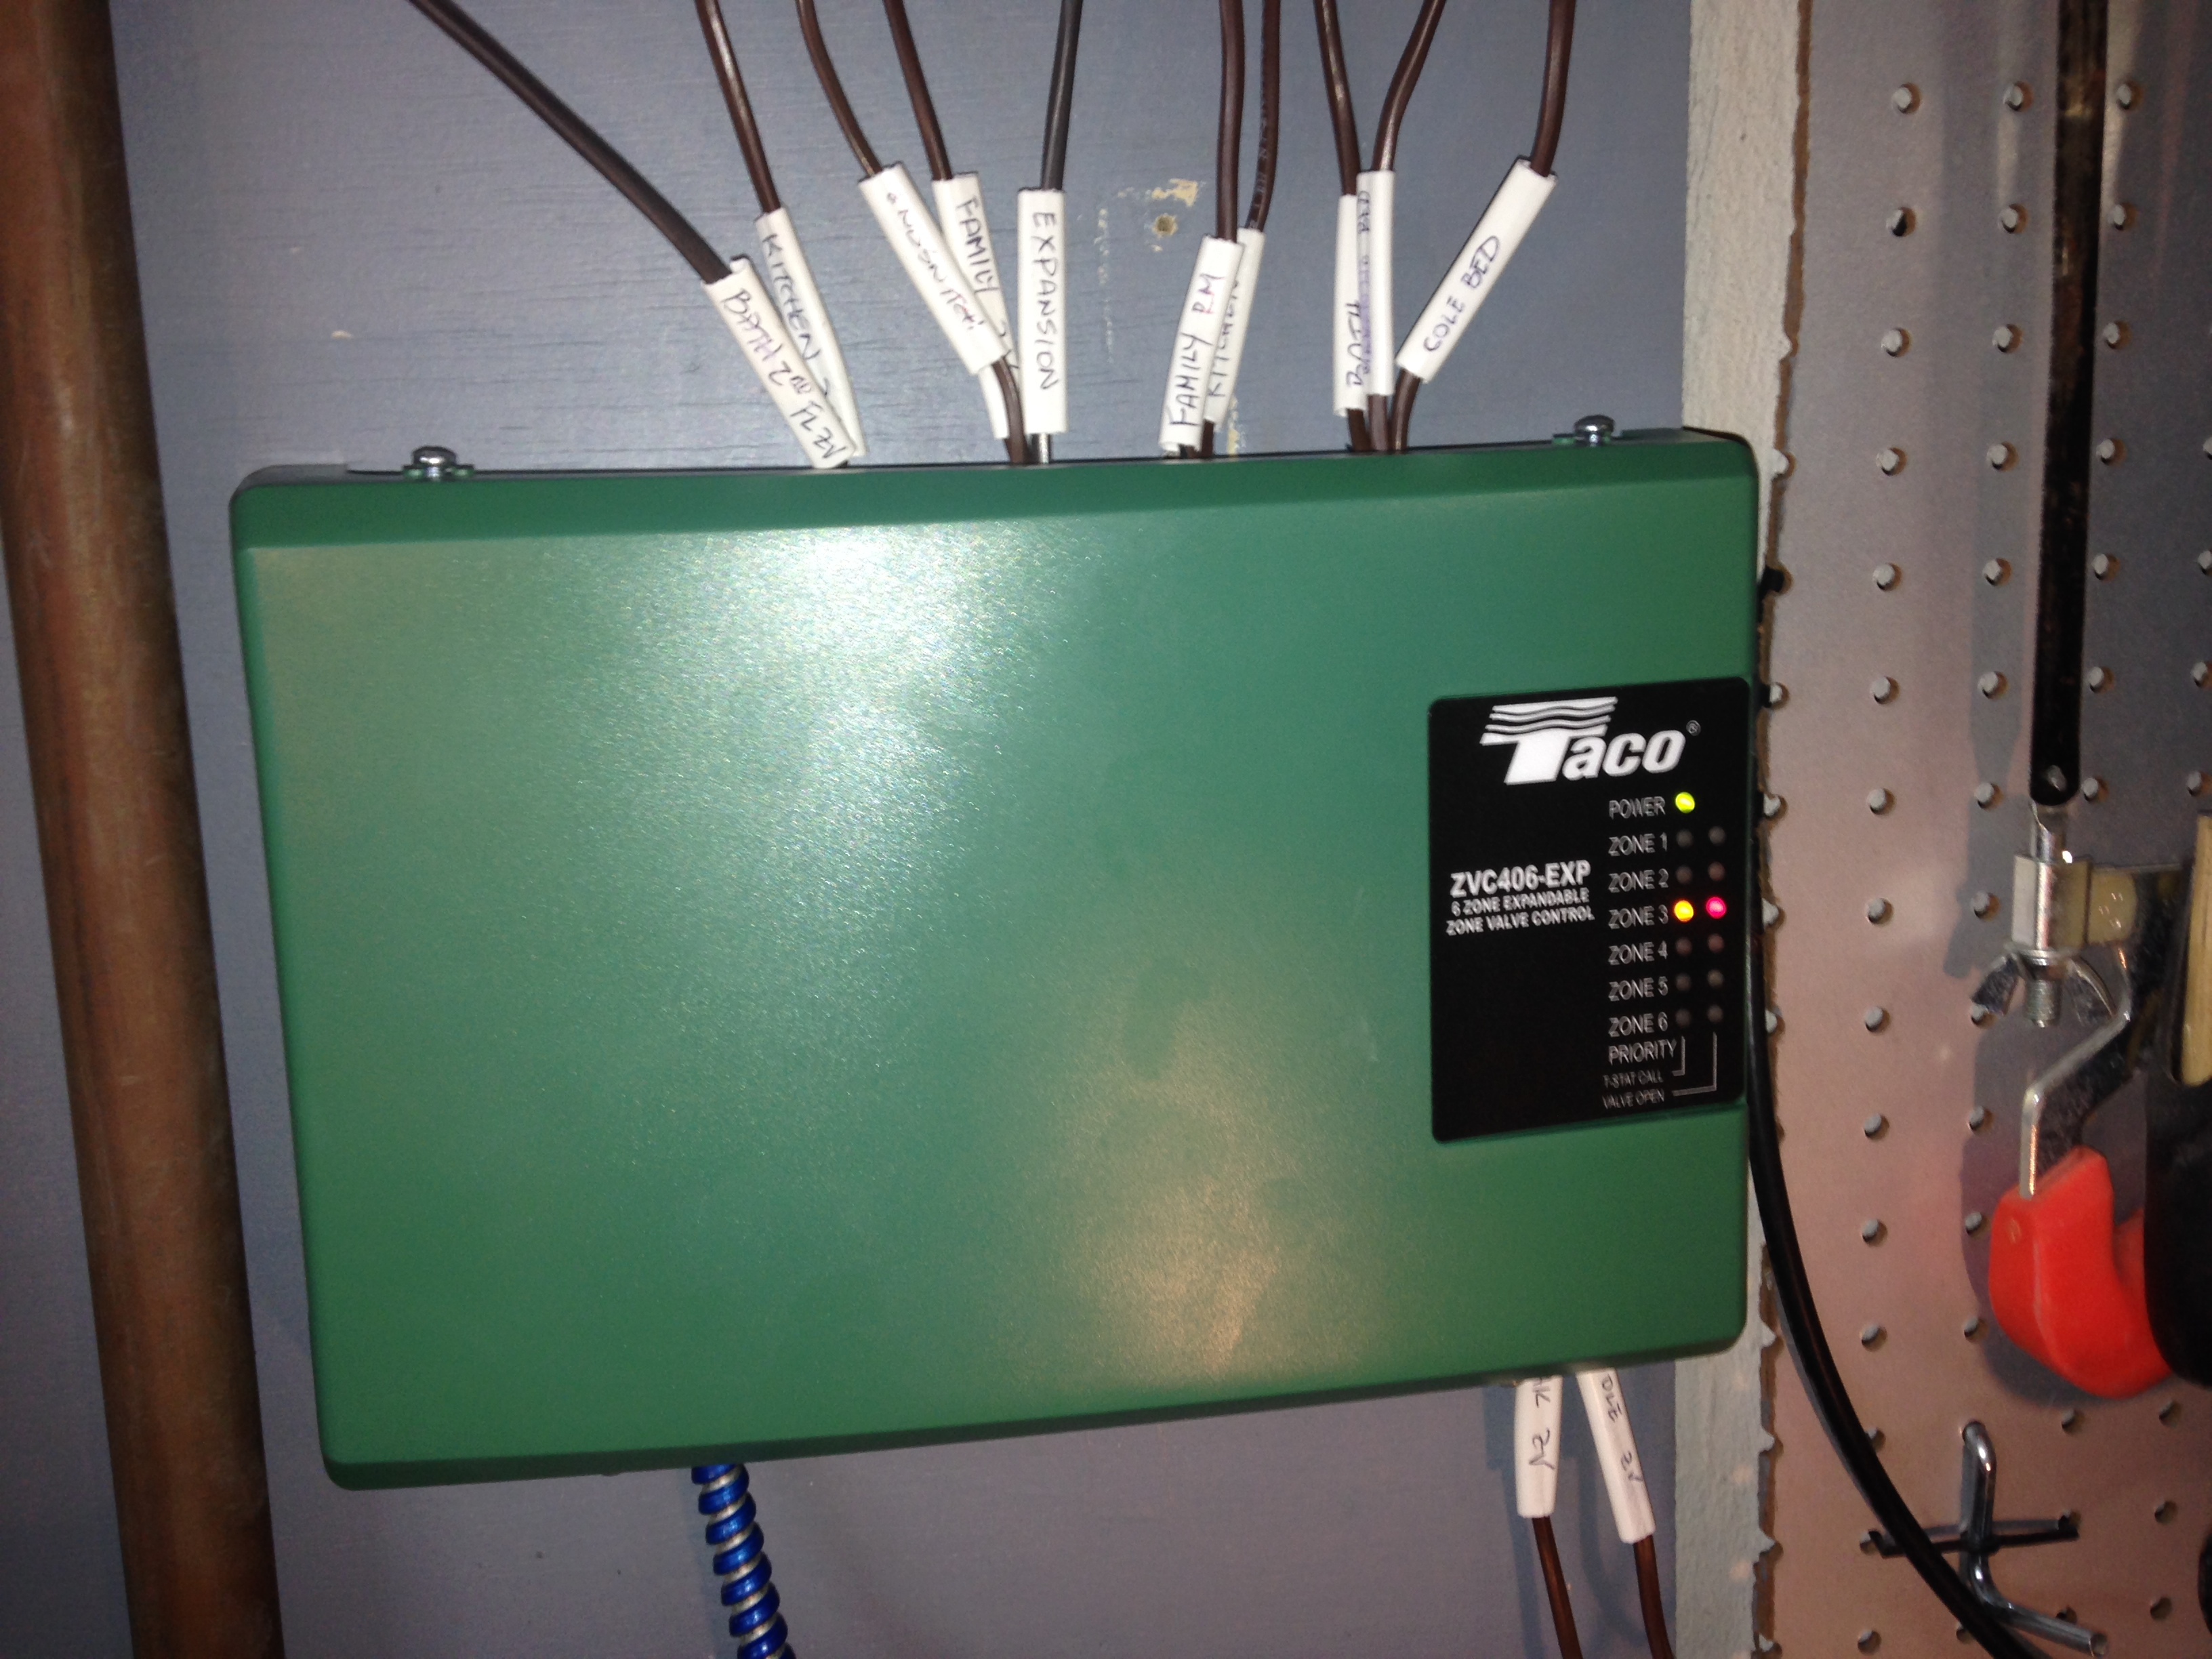 taco sentry zone valve wiring diagram rf transmitter and receiver block ask dave from the flopro team